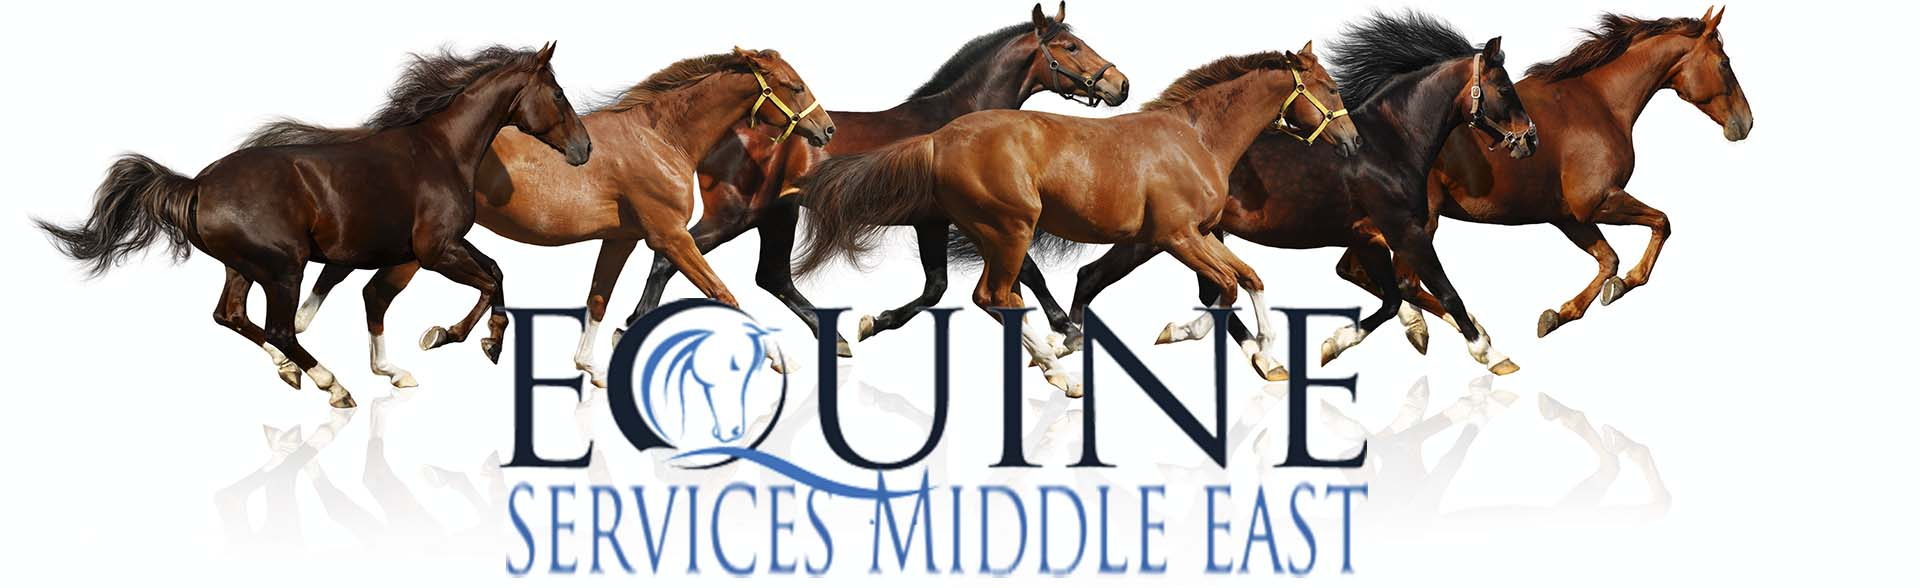 Equine Services Middle East